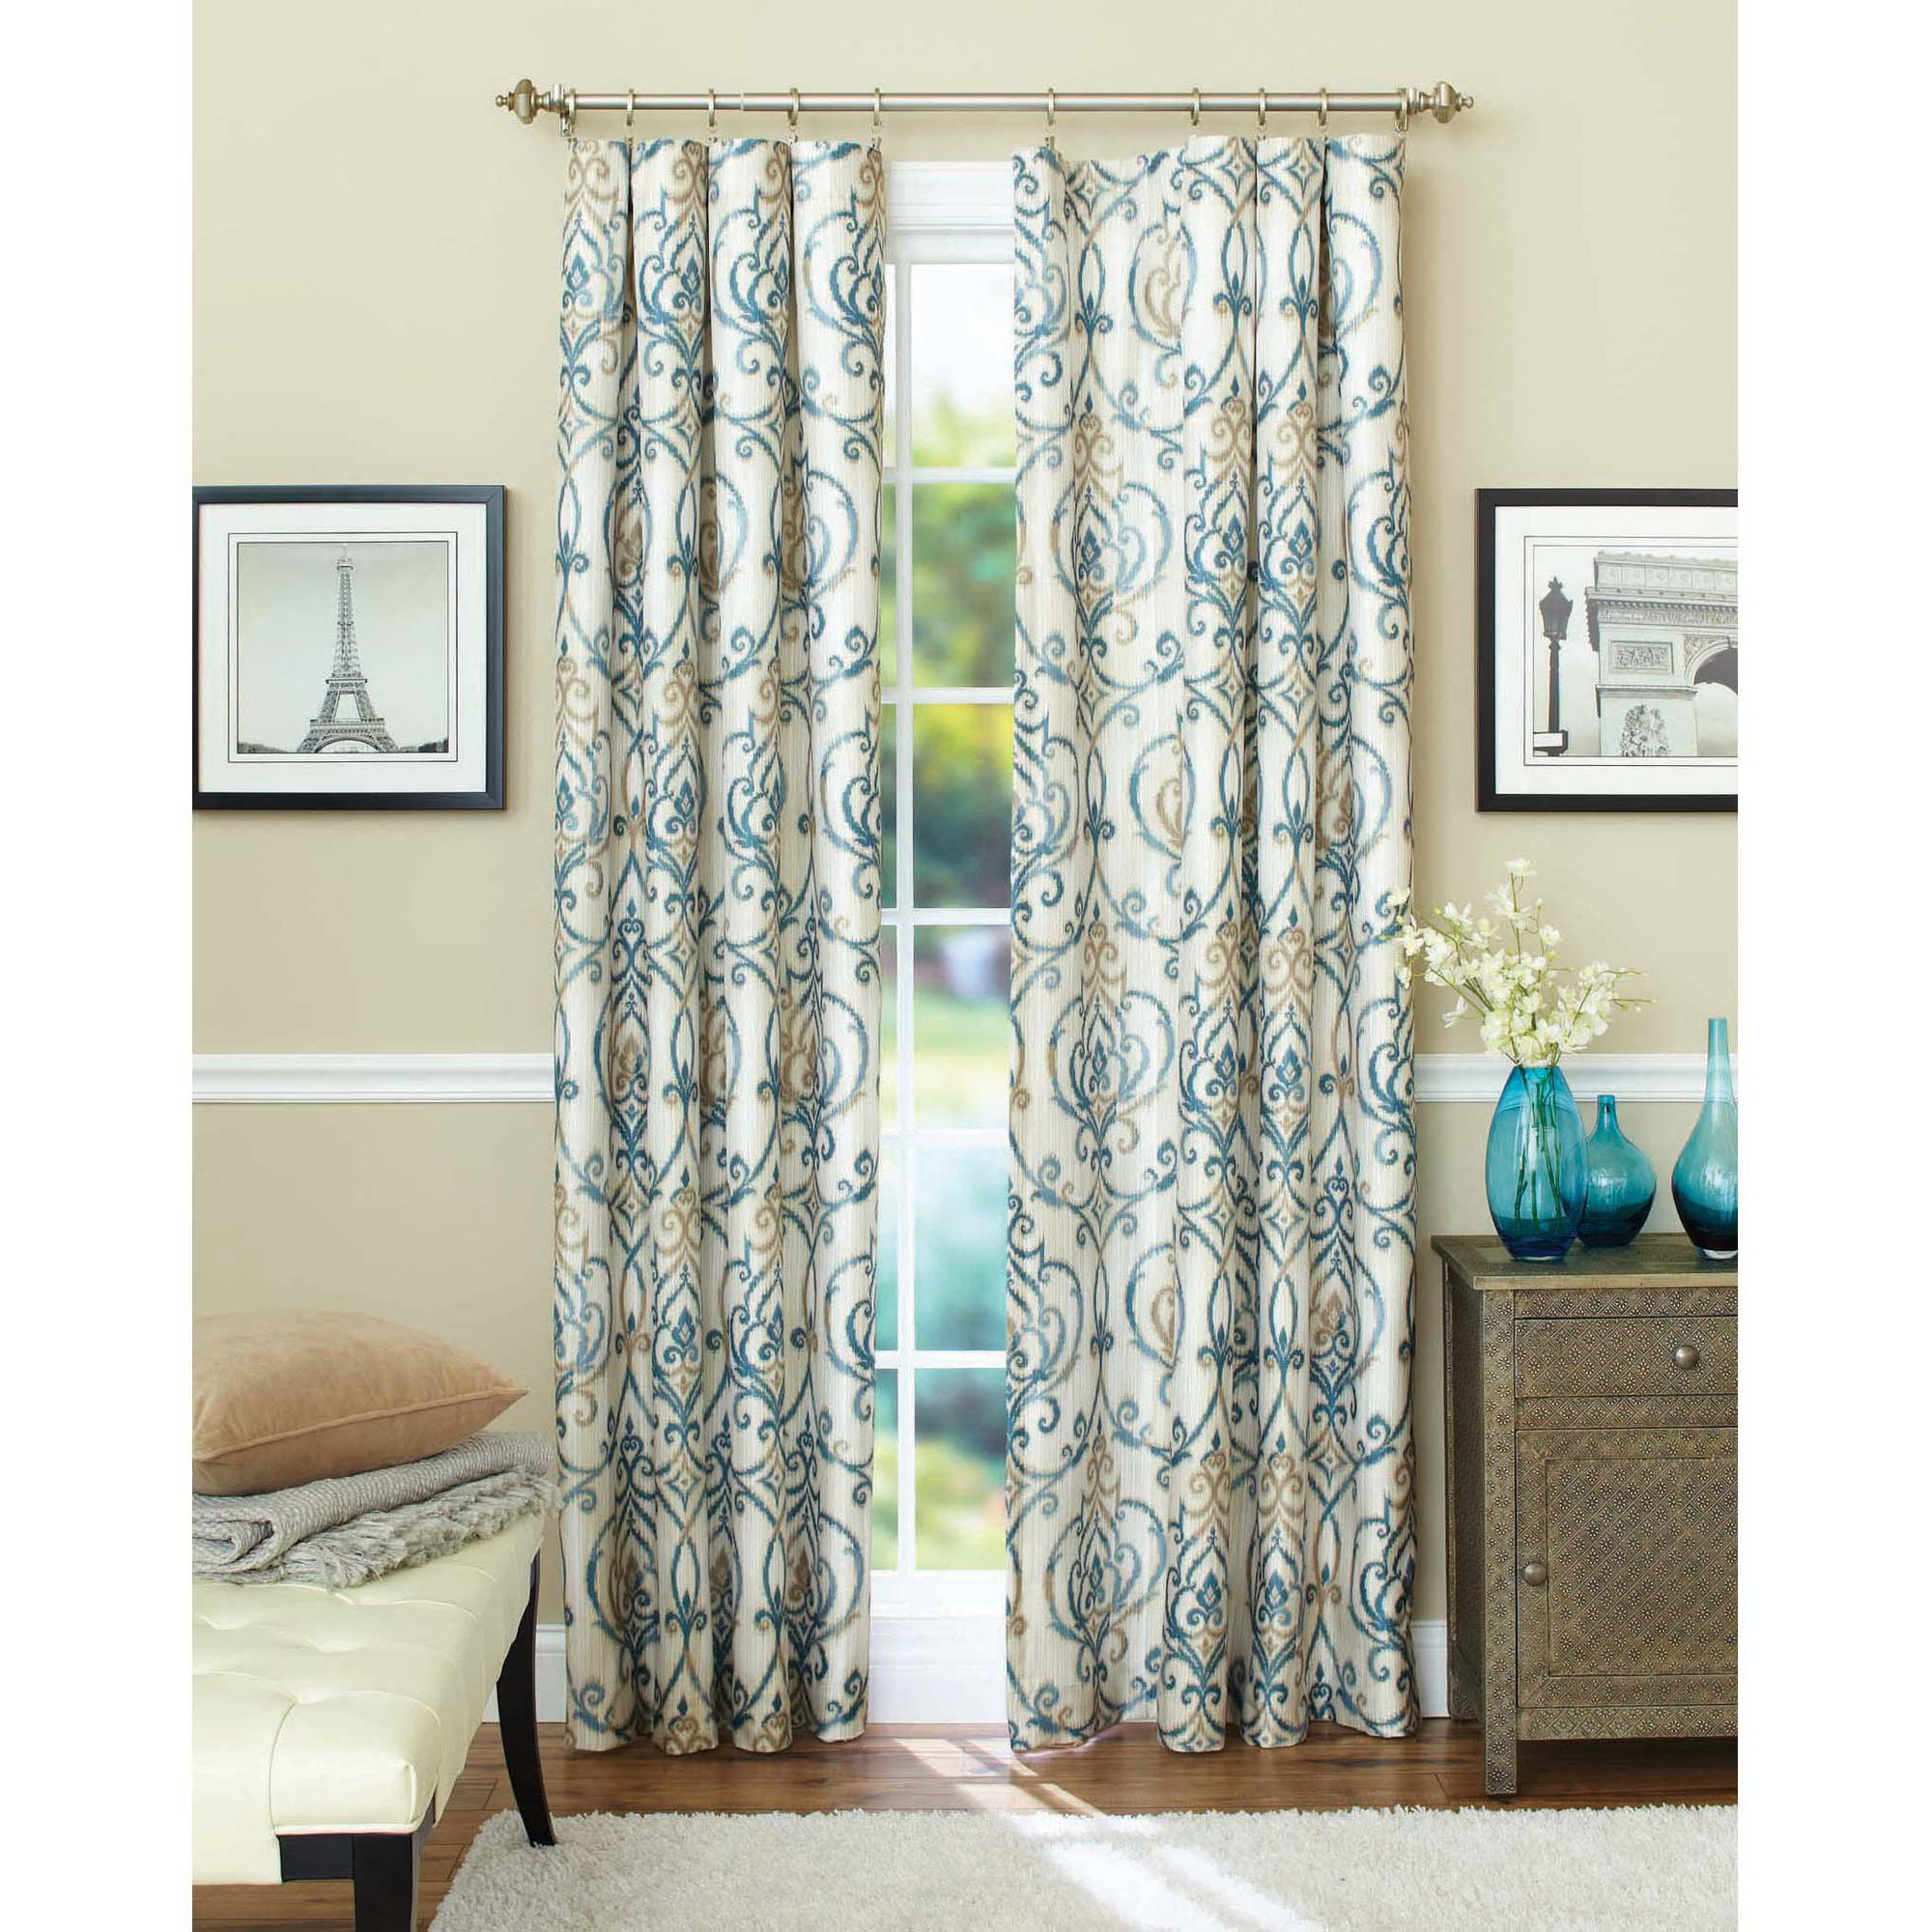 window curtains image of correct curtain dining treatments choose room and